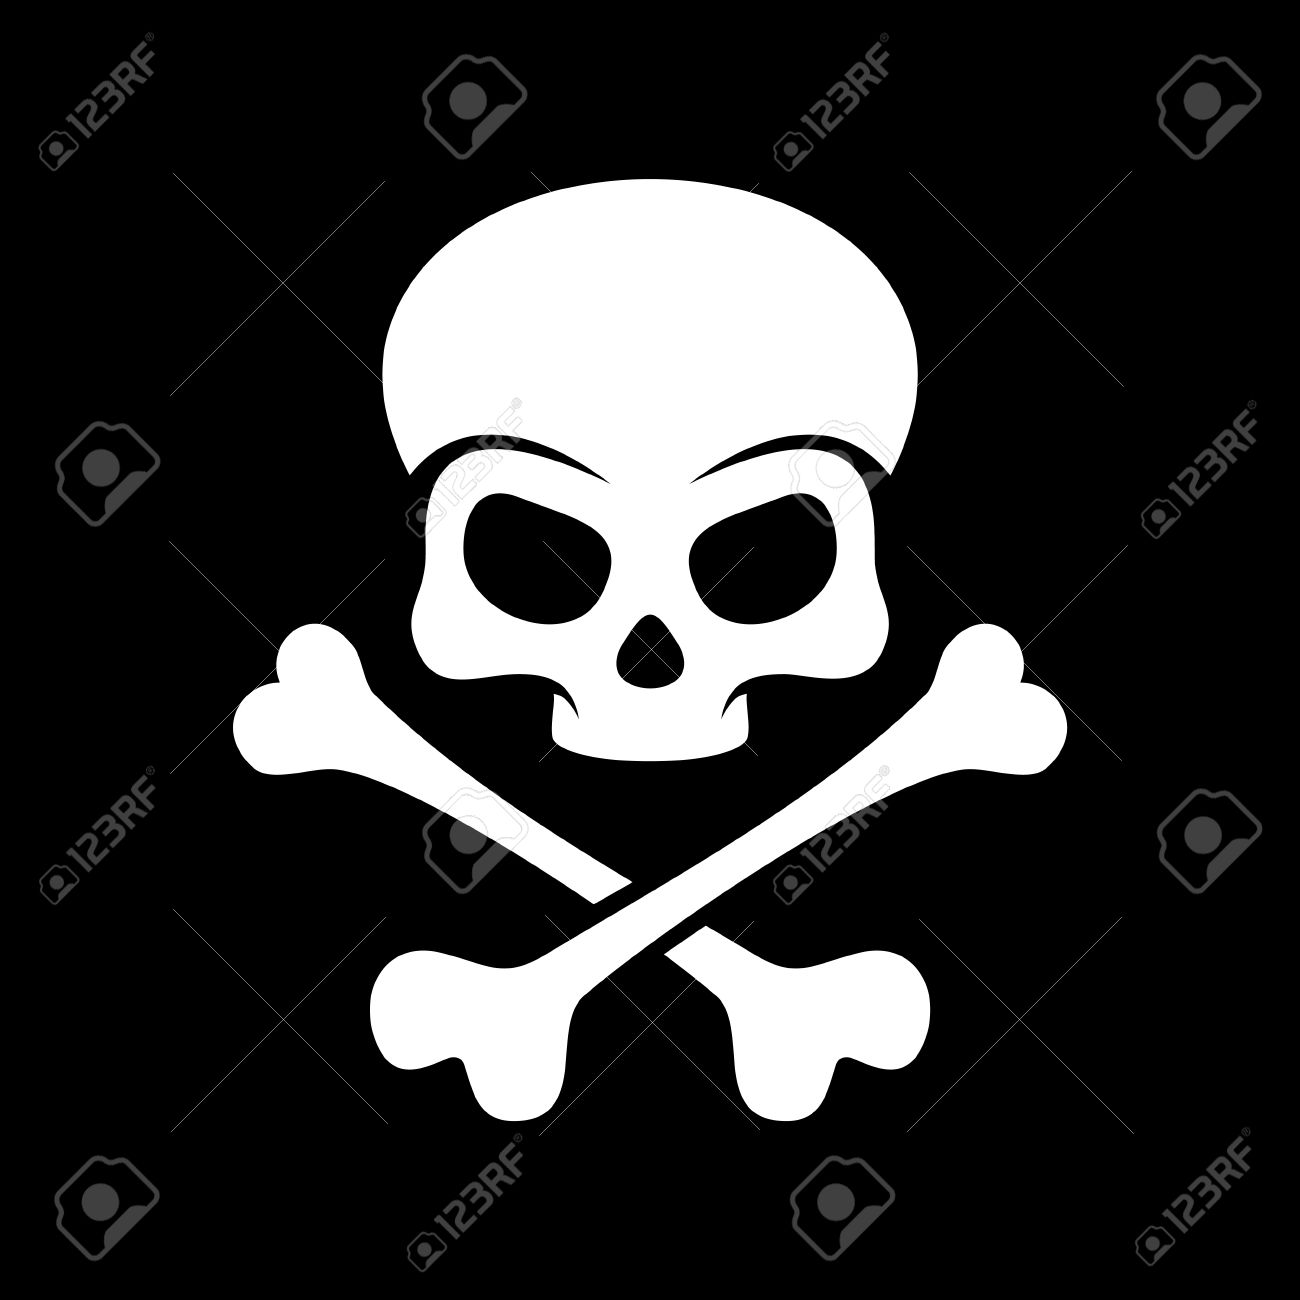 Skull And Bones A Mark Of The Danger Warning Stock Photo Picture